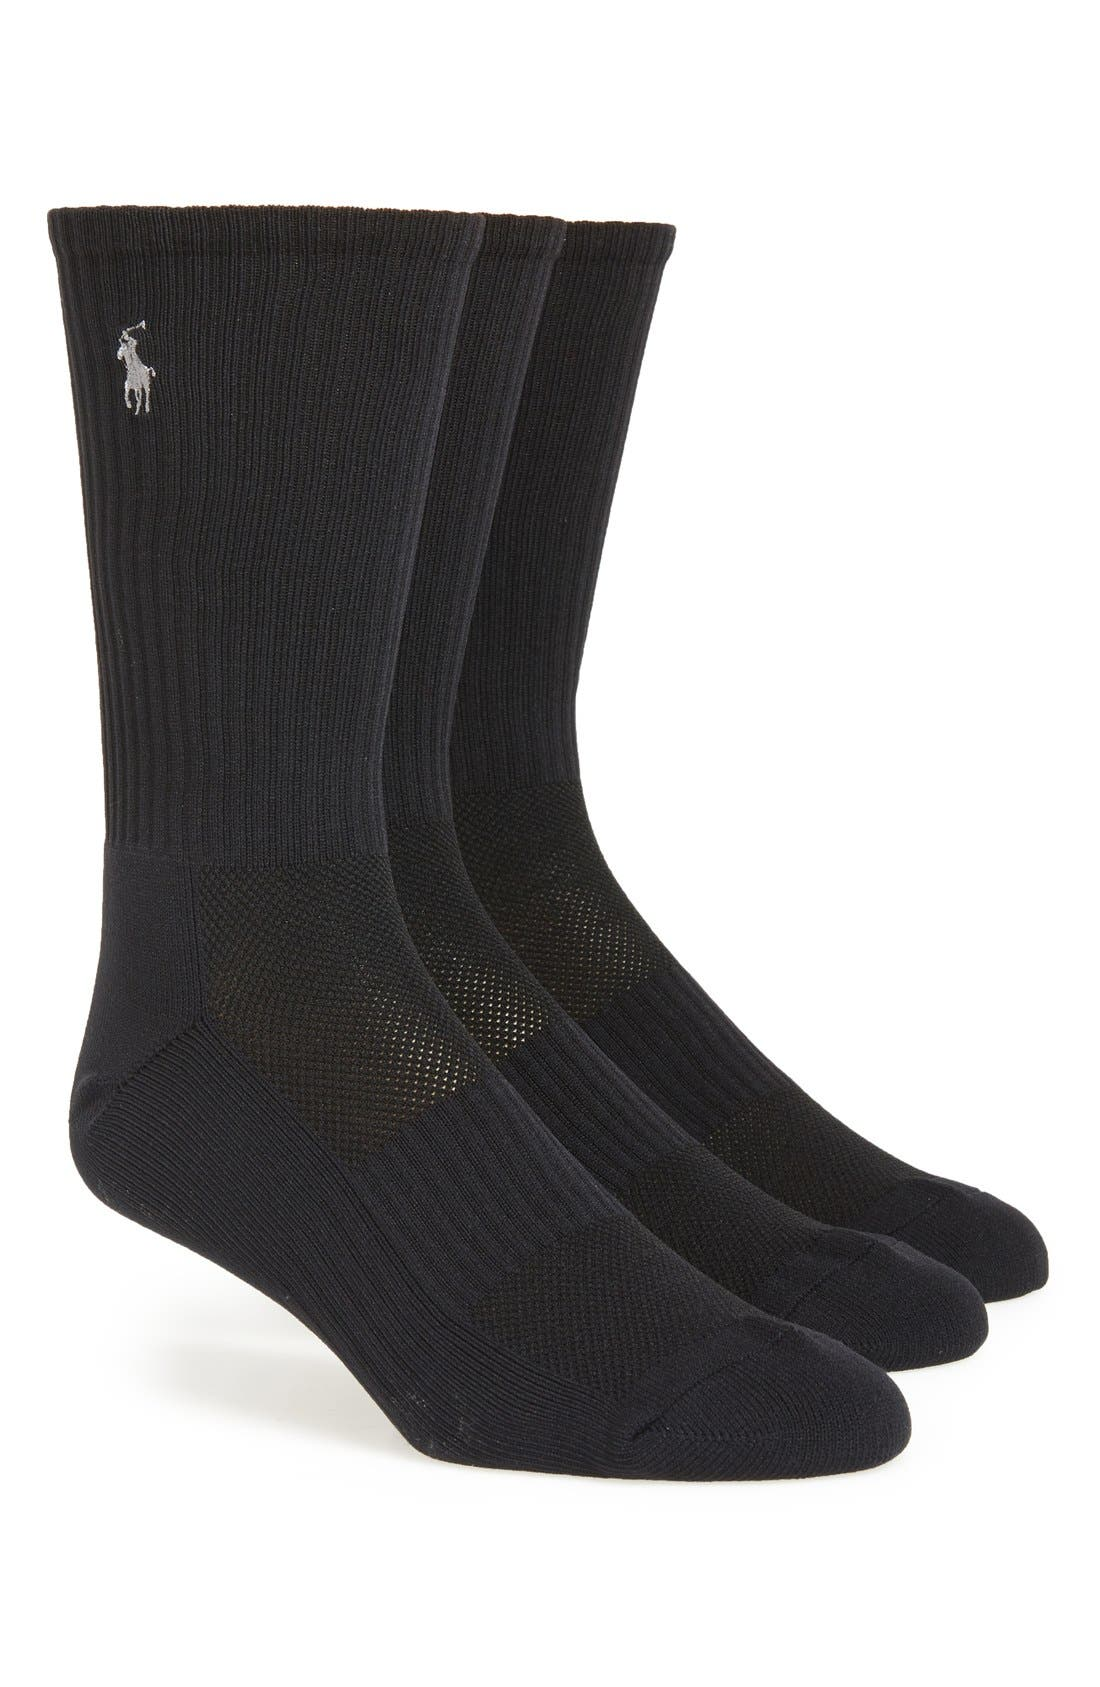 POLO RALPH LAUREN, Tech Athletic Crew Socks, Main thumbnail 1, color, BLACK